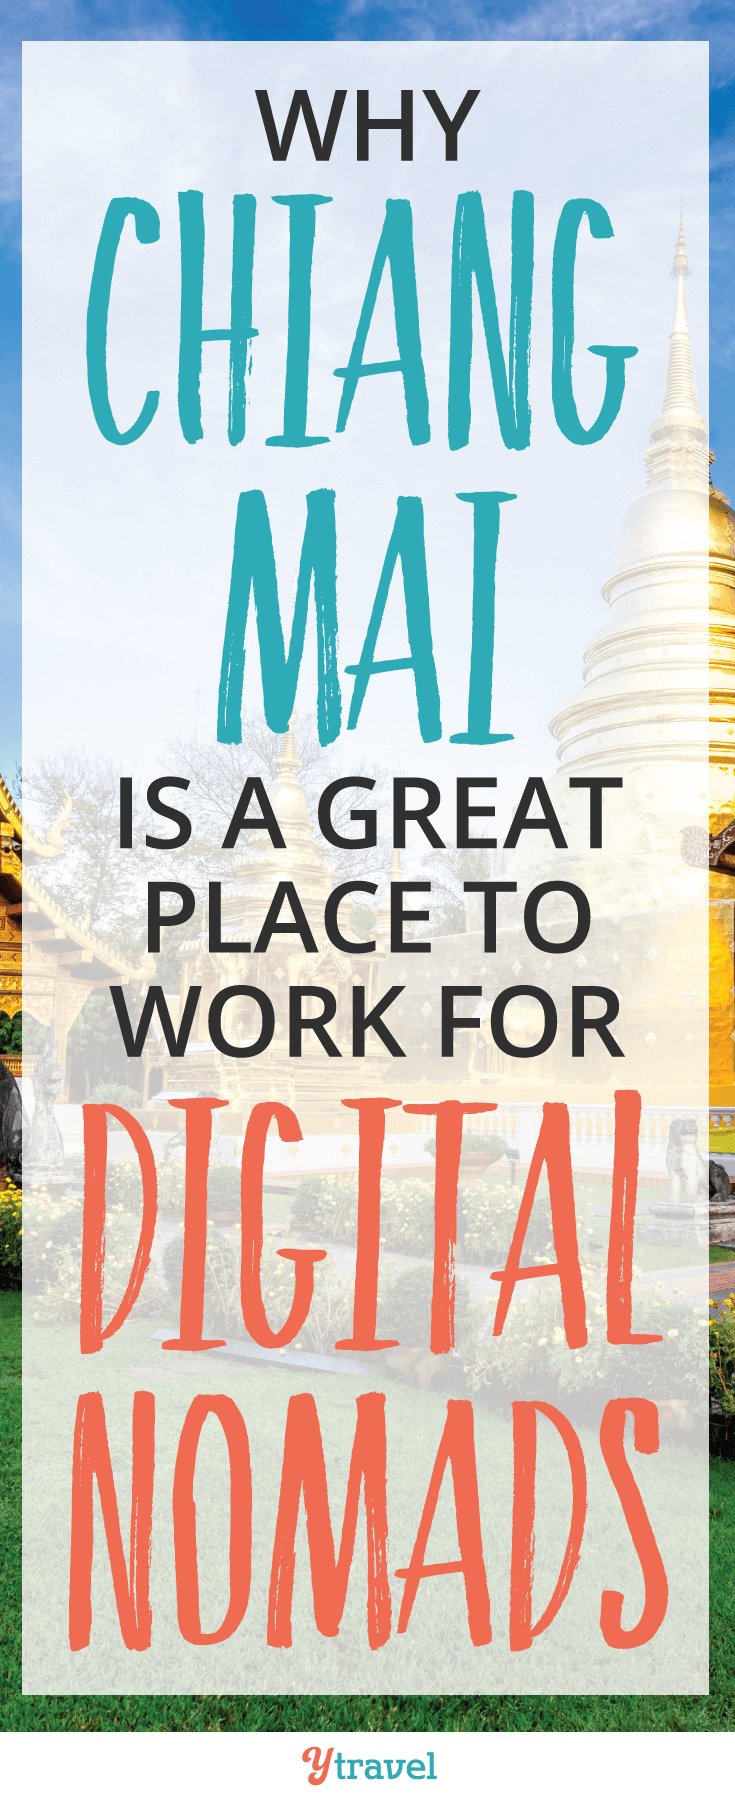 Chiang Mai, Thailand is a great place to work for digital nomads. Welcome to a less bustling place, a slower pace of life, incredible food, and mesmerizing temples.